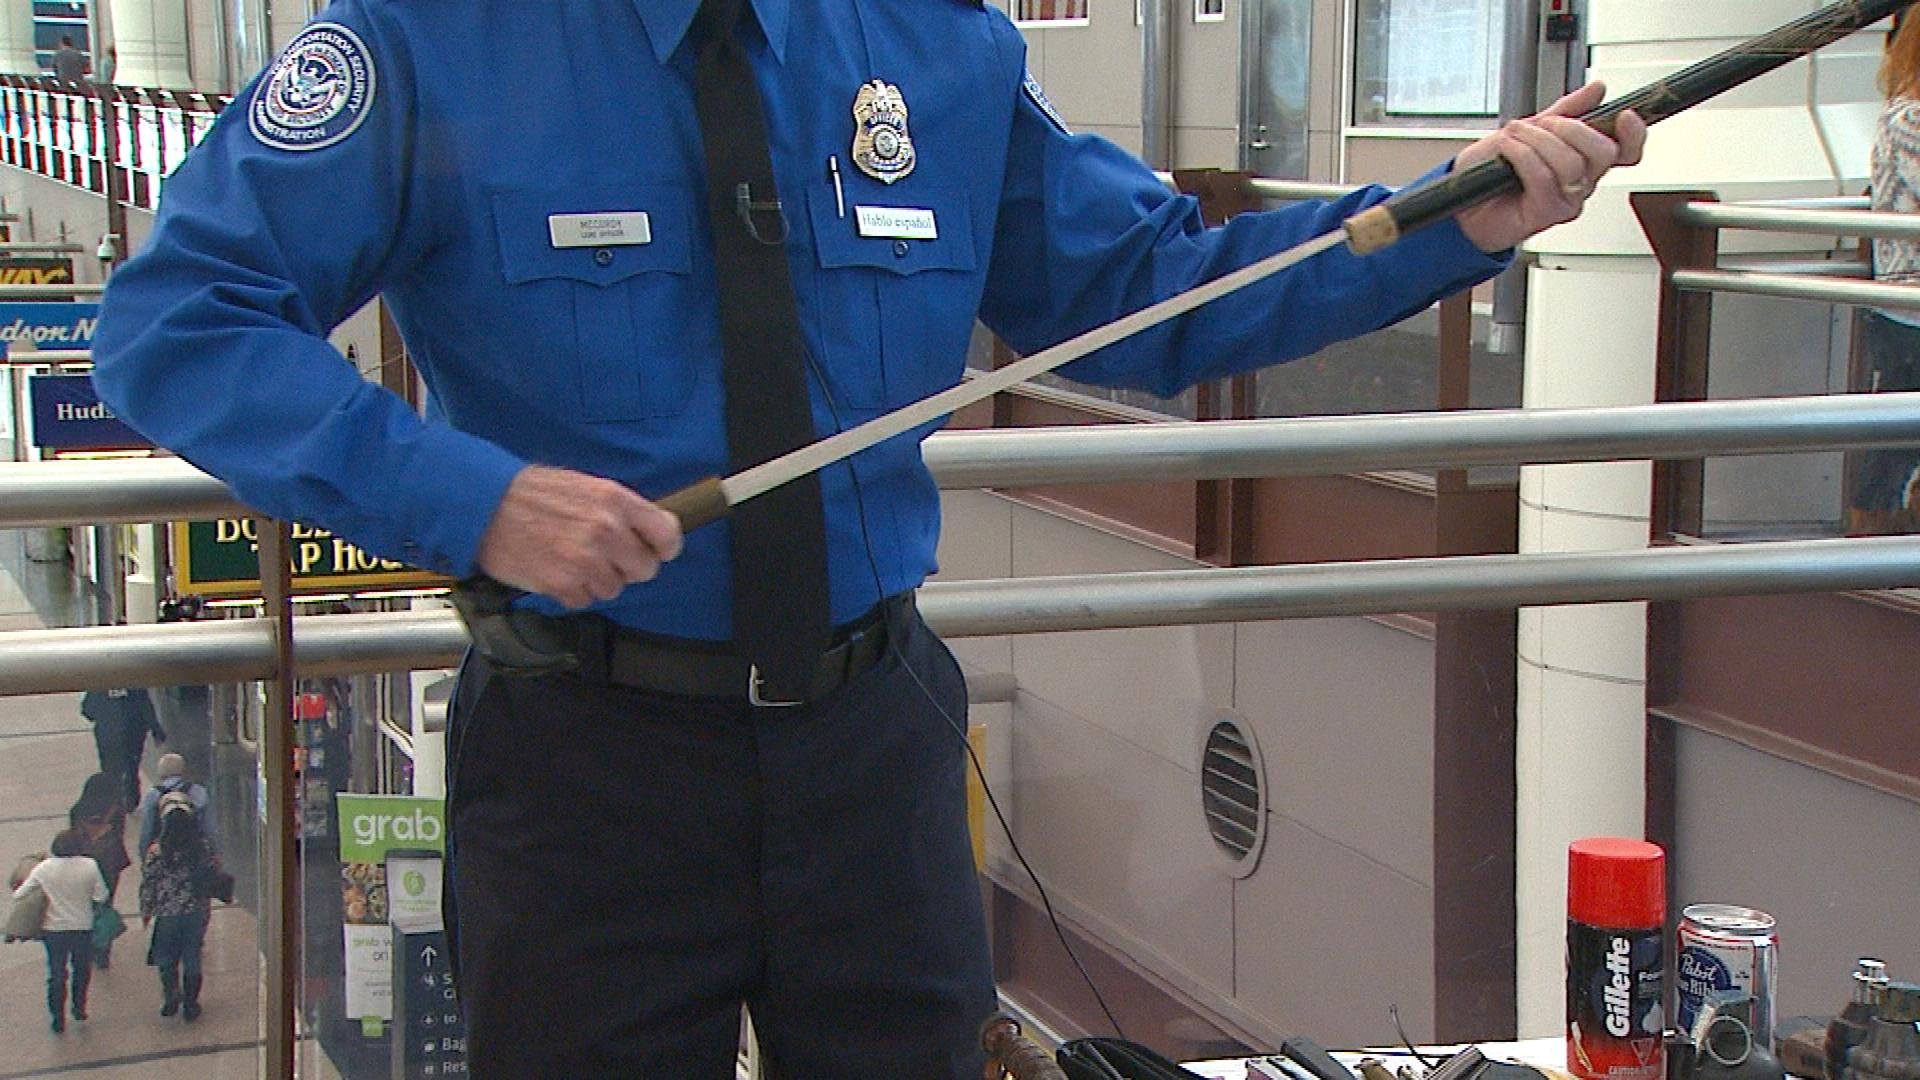 Harold McCurdy with TSA with a sword found in a cane (credit: CBS)